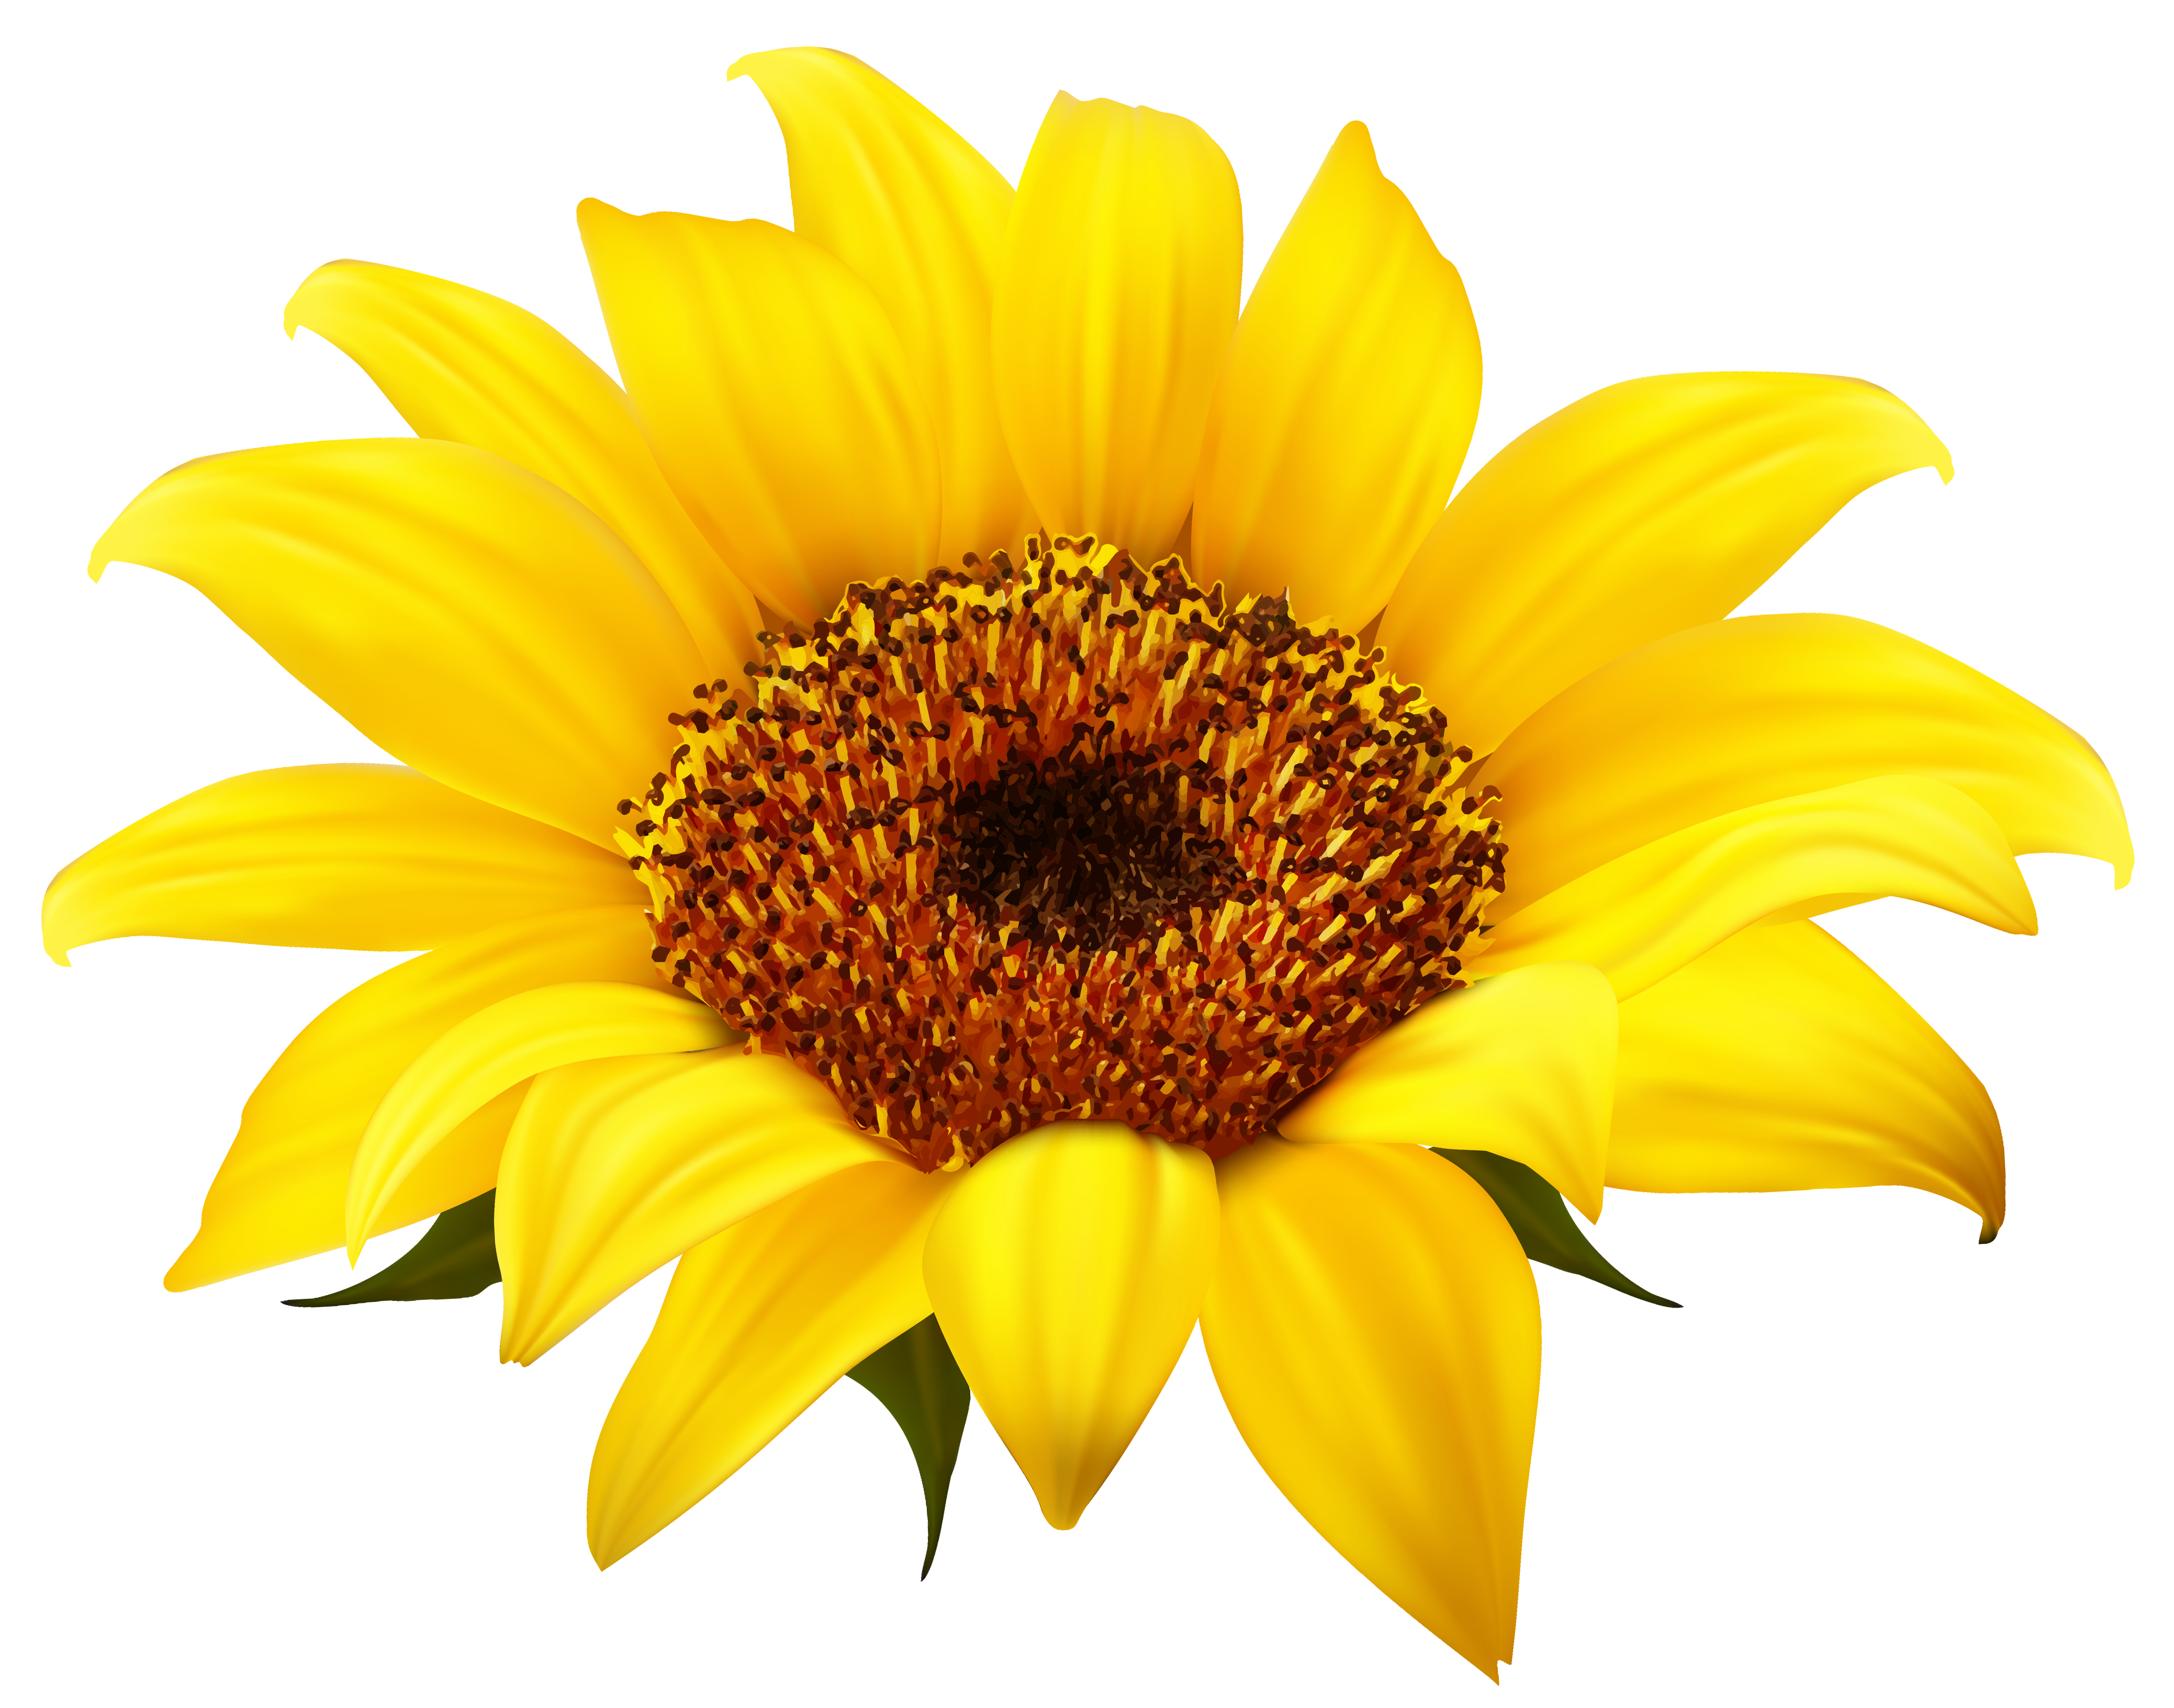 Sunflowers PNG - 6596